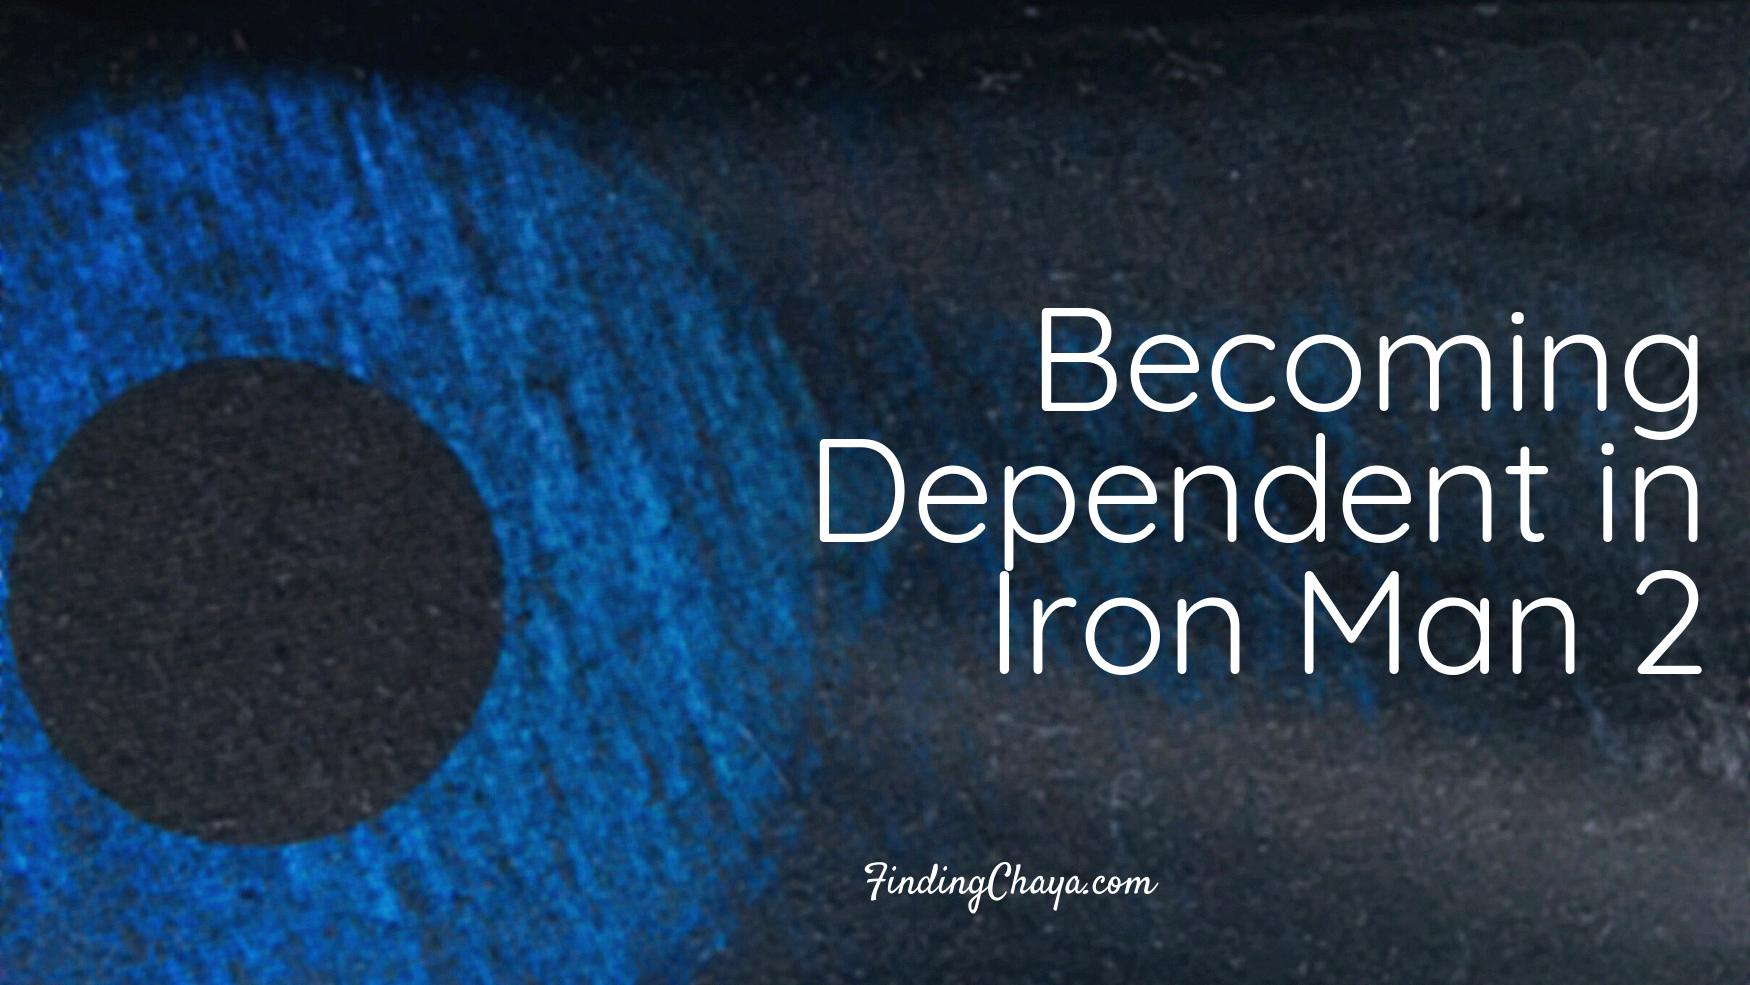 Becoming Dependent in Iron Man 2